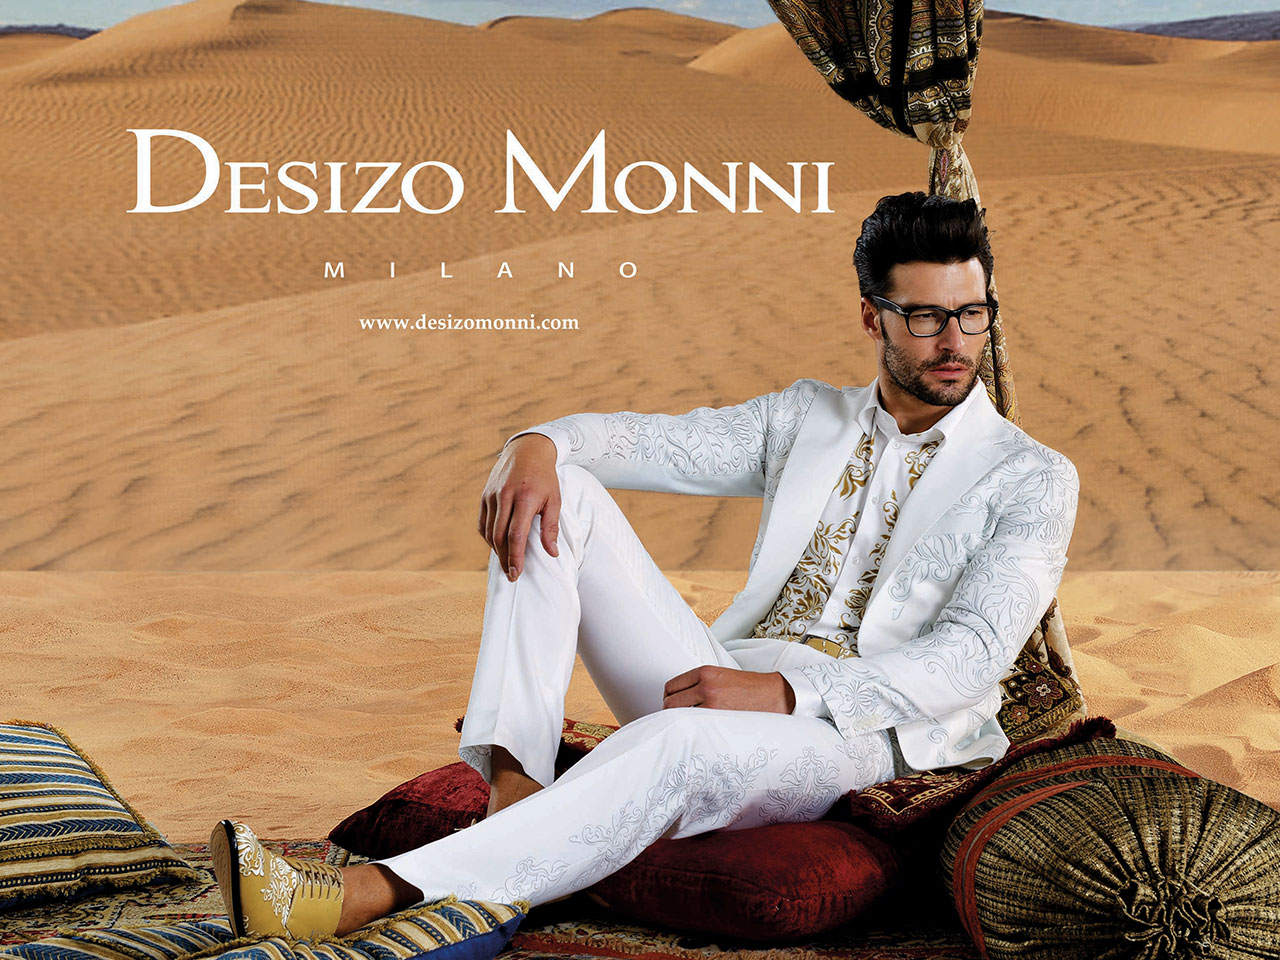 Desizo Monni collection spring summer 2017 by Dilian Markov, model Marian Kurpanov